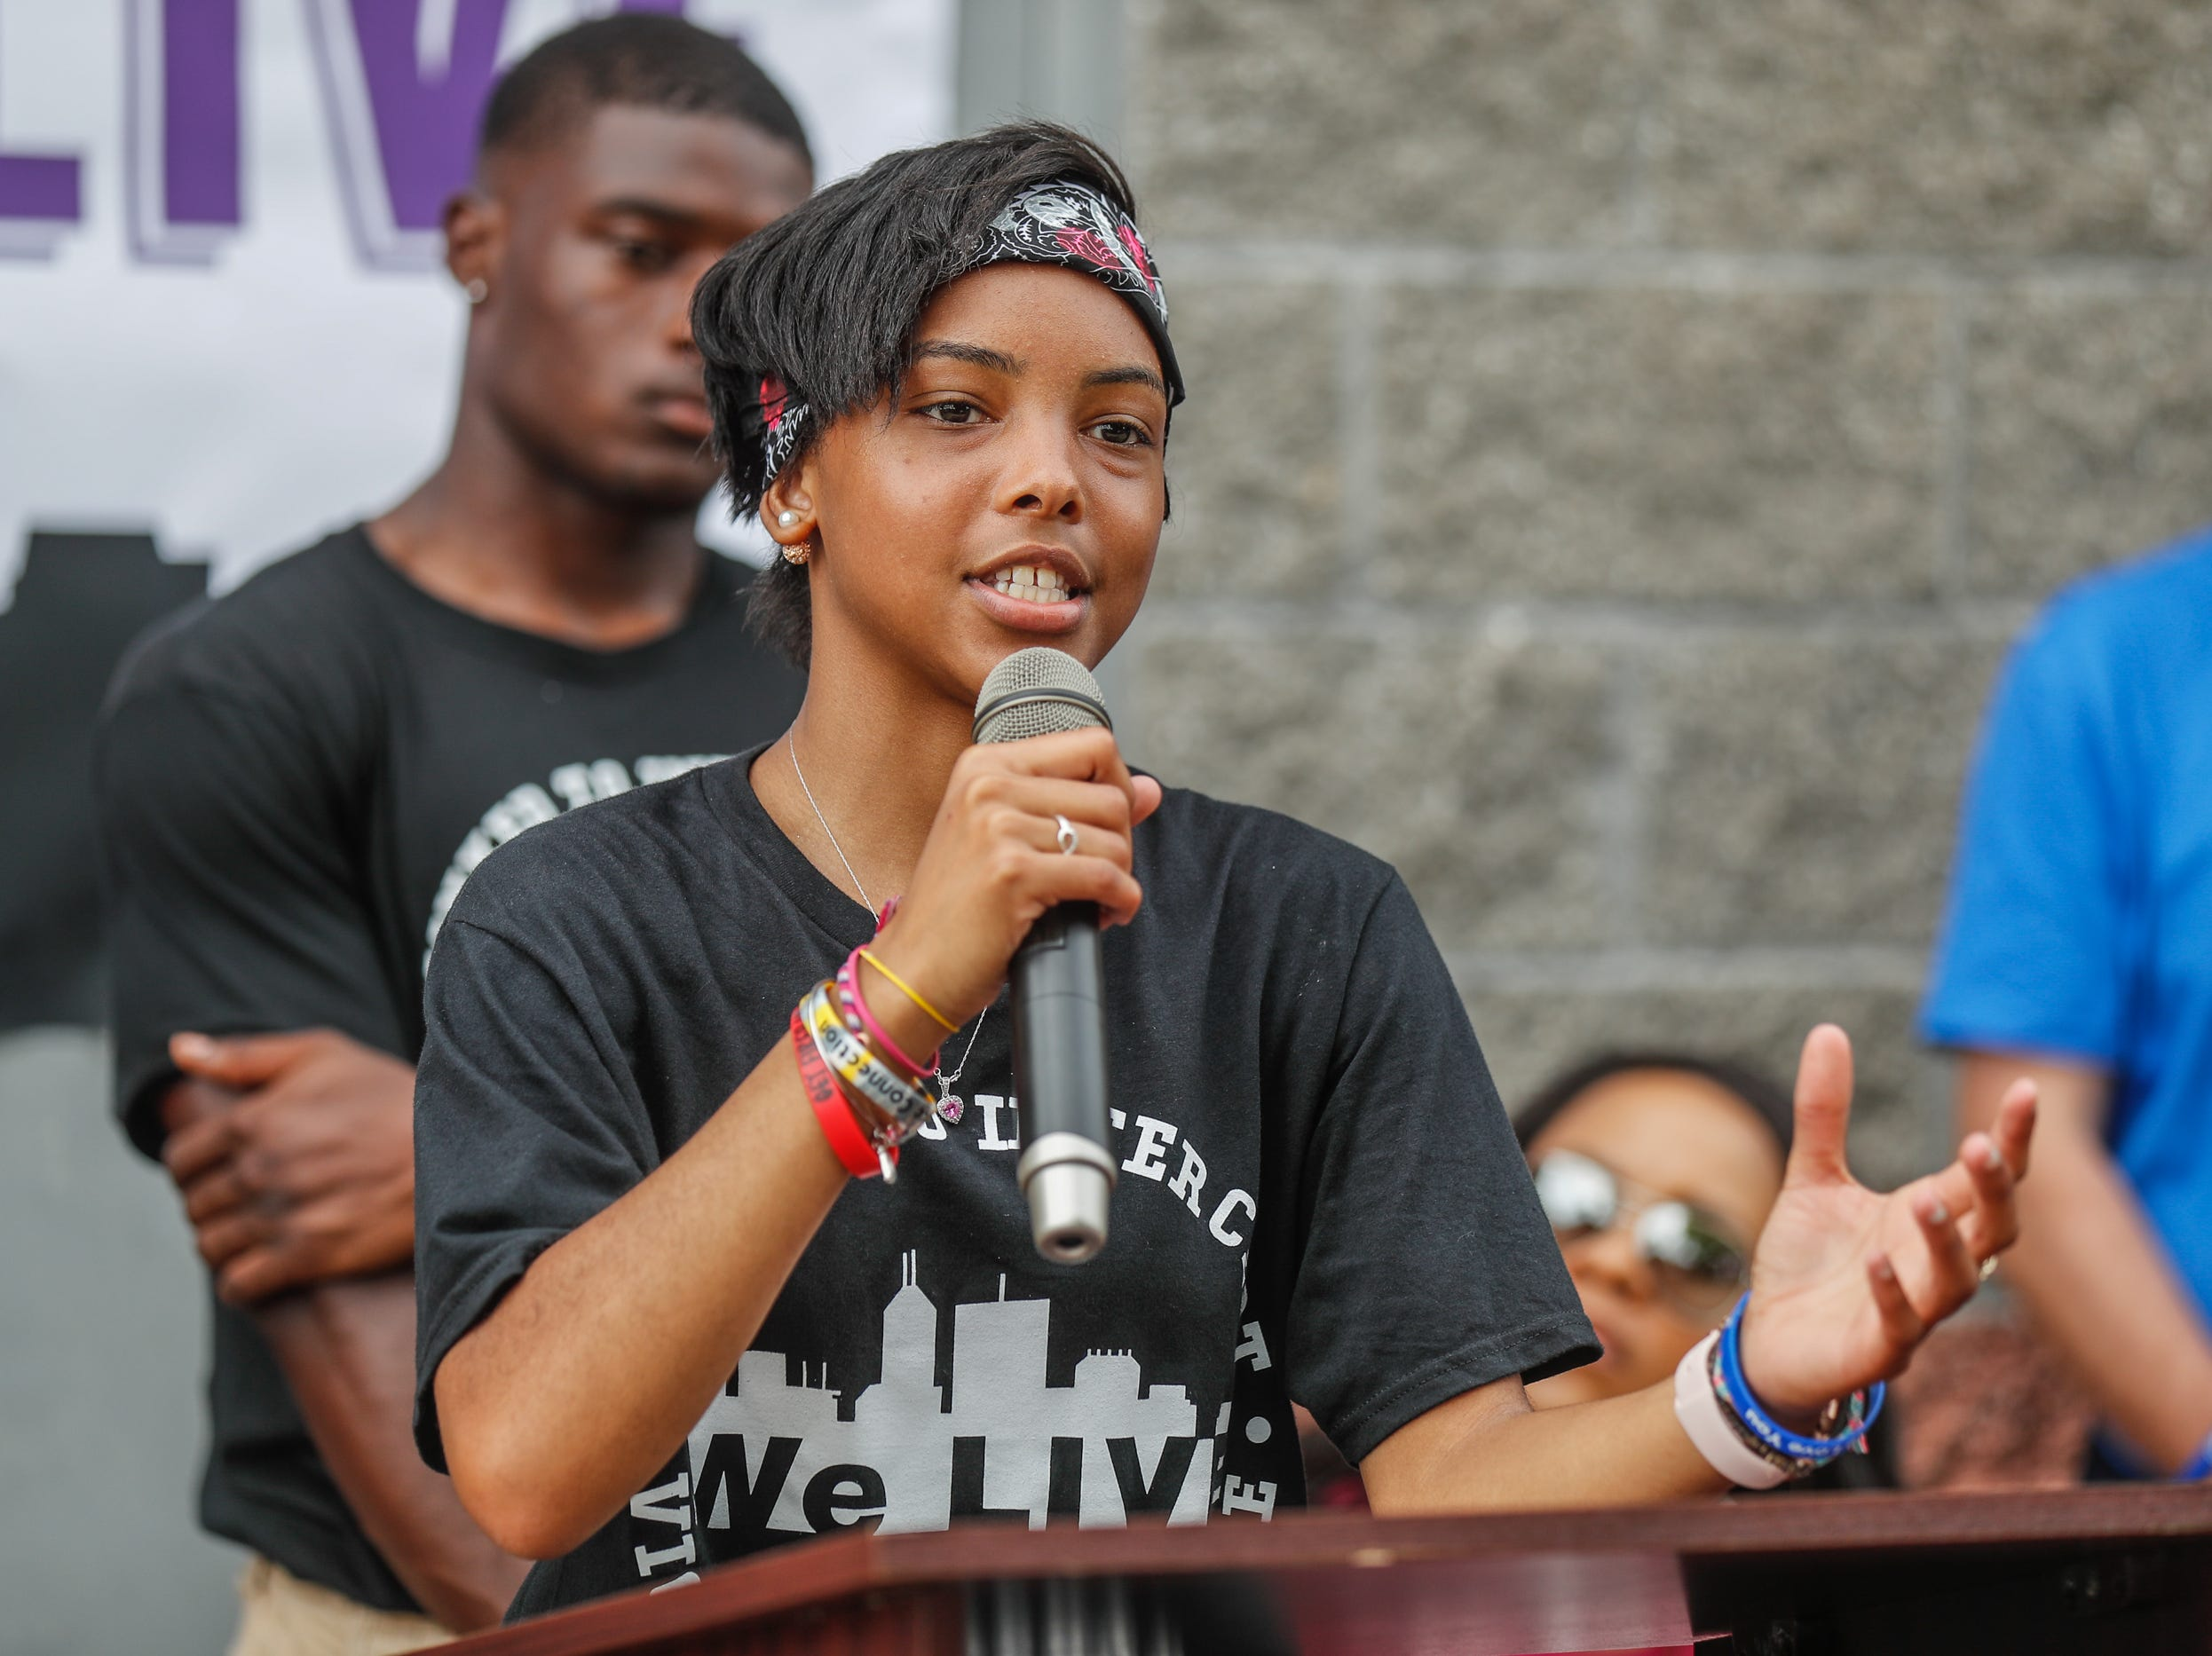 Destiny Hatcher, who lost her uncle and friend JeShon Cameron to youth gun violence emcees the second annual 'We Live,' Peace Walk and Community Day to end youth violence at Washington Park on Saturday, Aug. 11, 2018. 'We Live,' which stands for 'Linked To Intercept Violence' was started by students from Warren Central High School in Indianapolis.